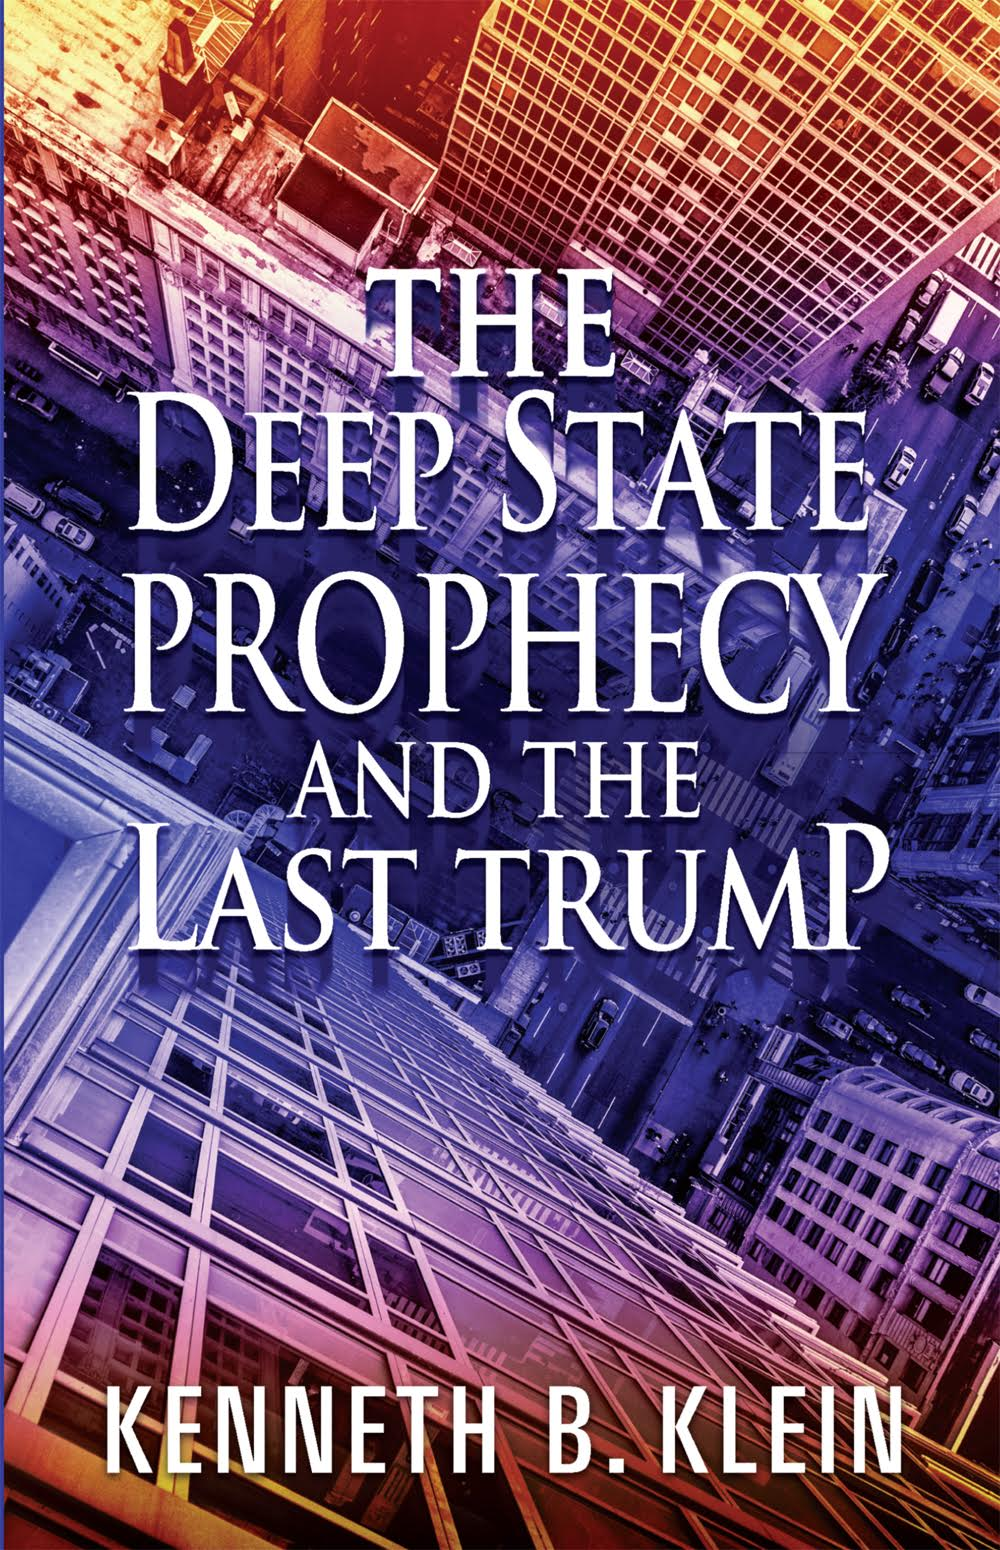 The Deep State Prophecy and the Last Trump